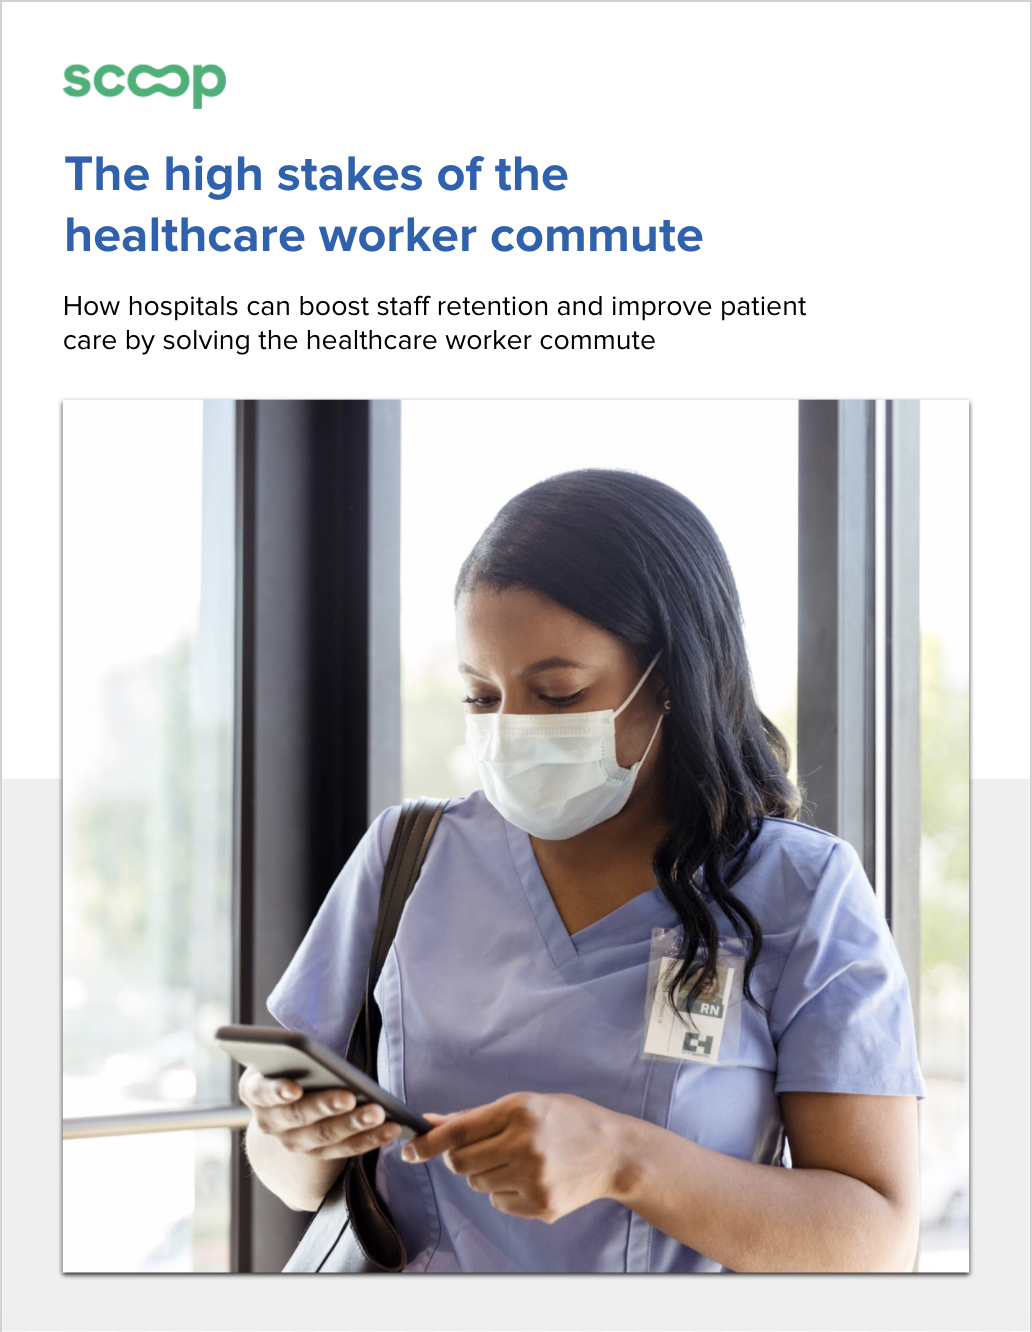 The high stakes of the healthcare worker commute